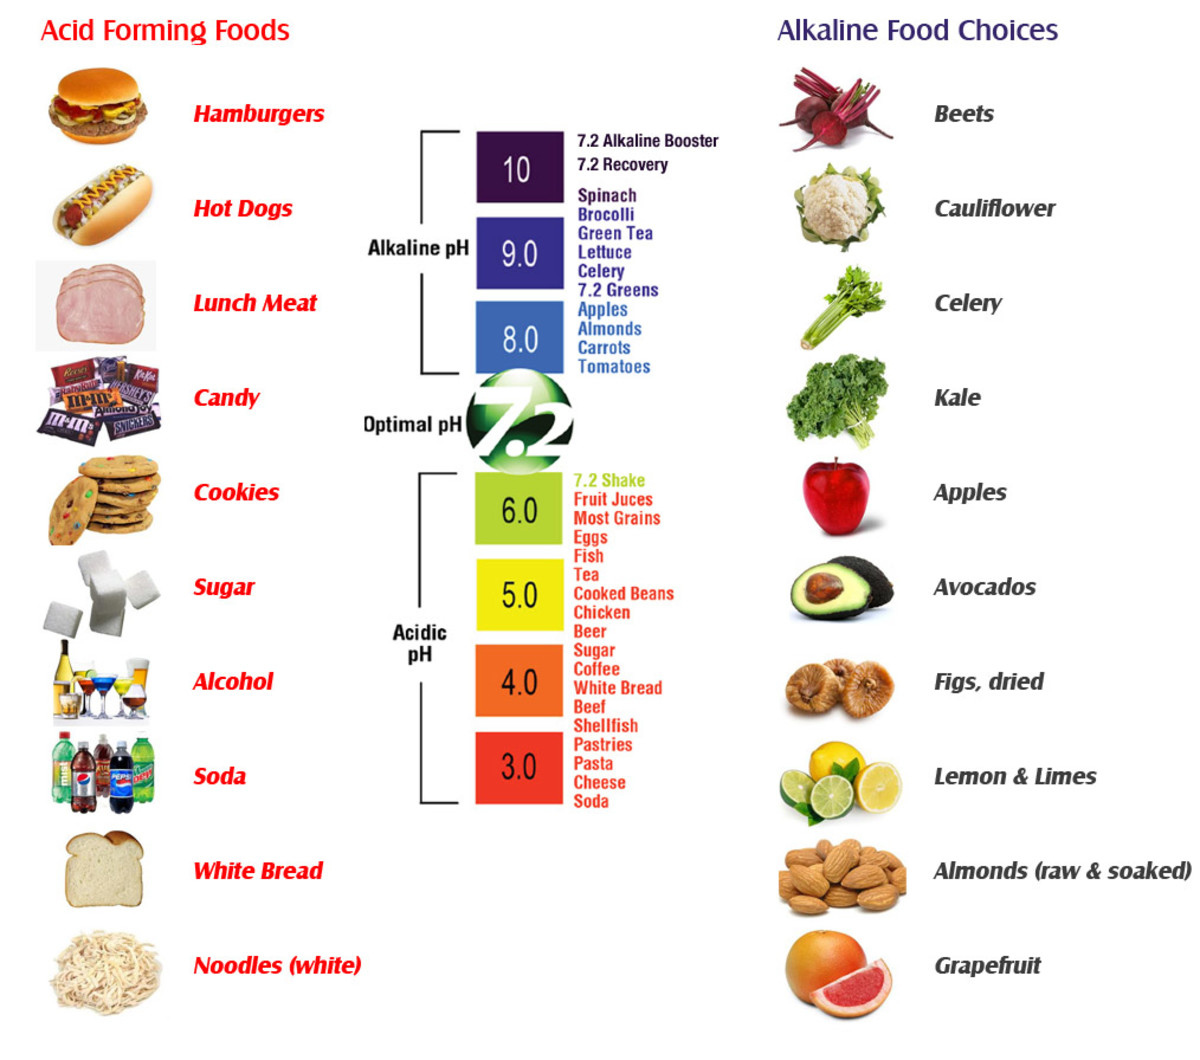 Small Example of Acidic foods vs Alkaline foods.